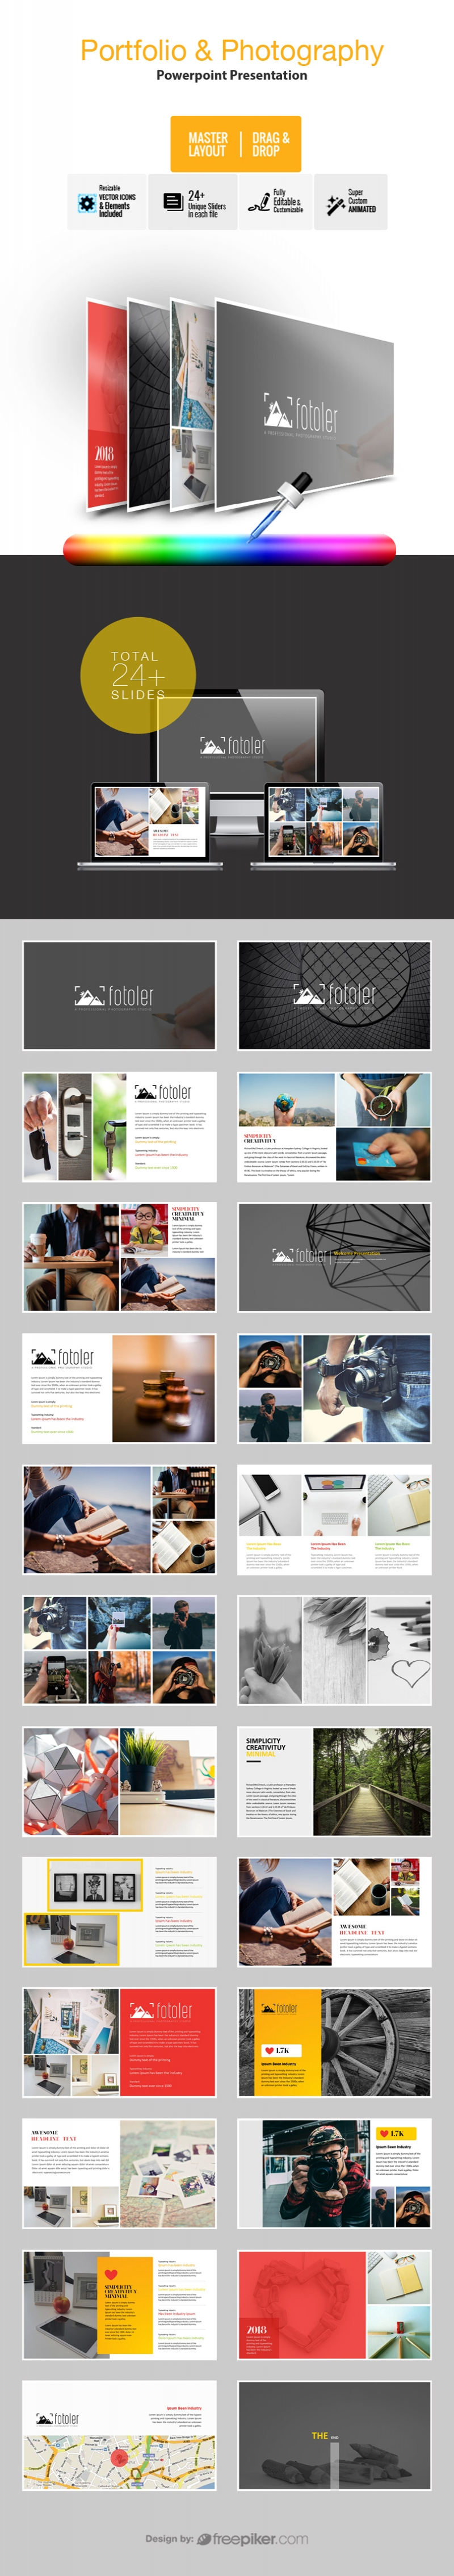 Photography Powerpoint Presentation